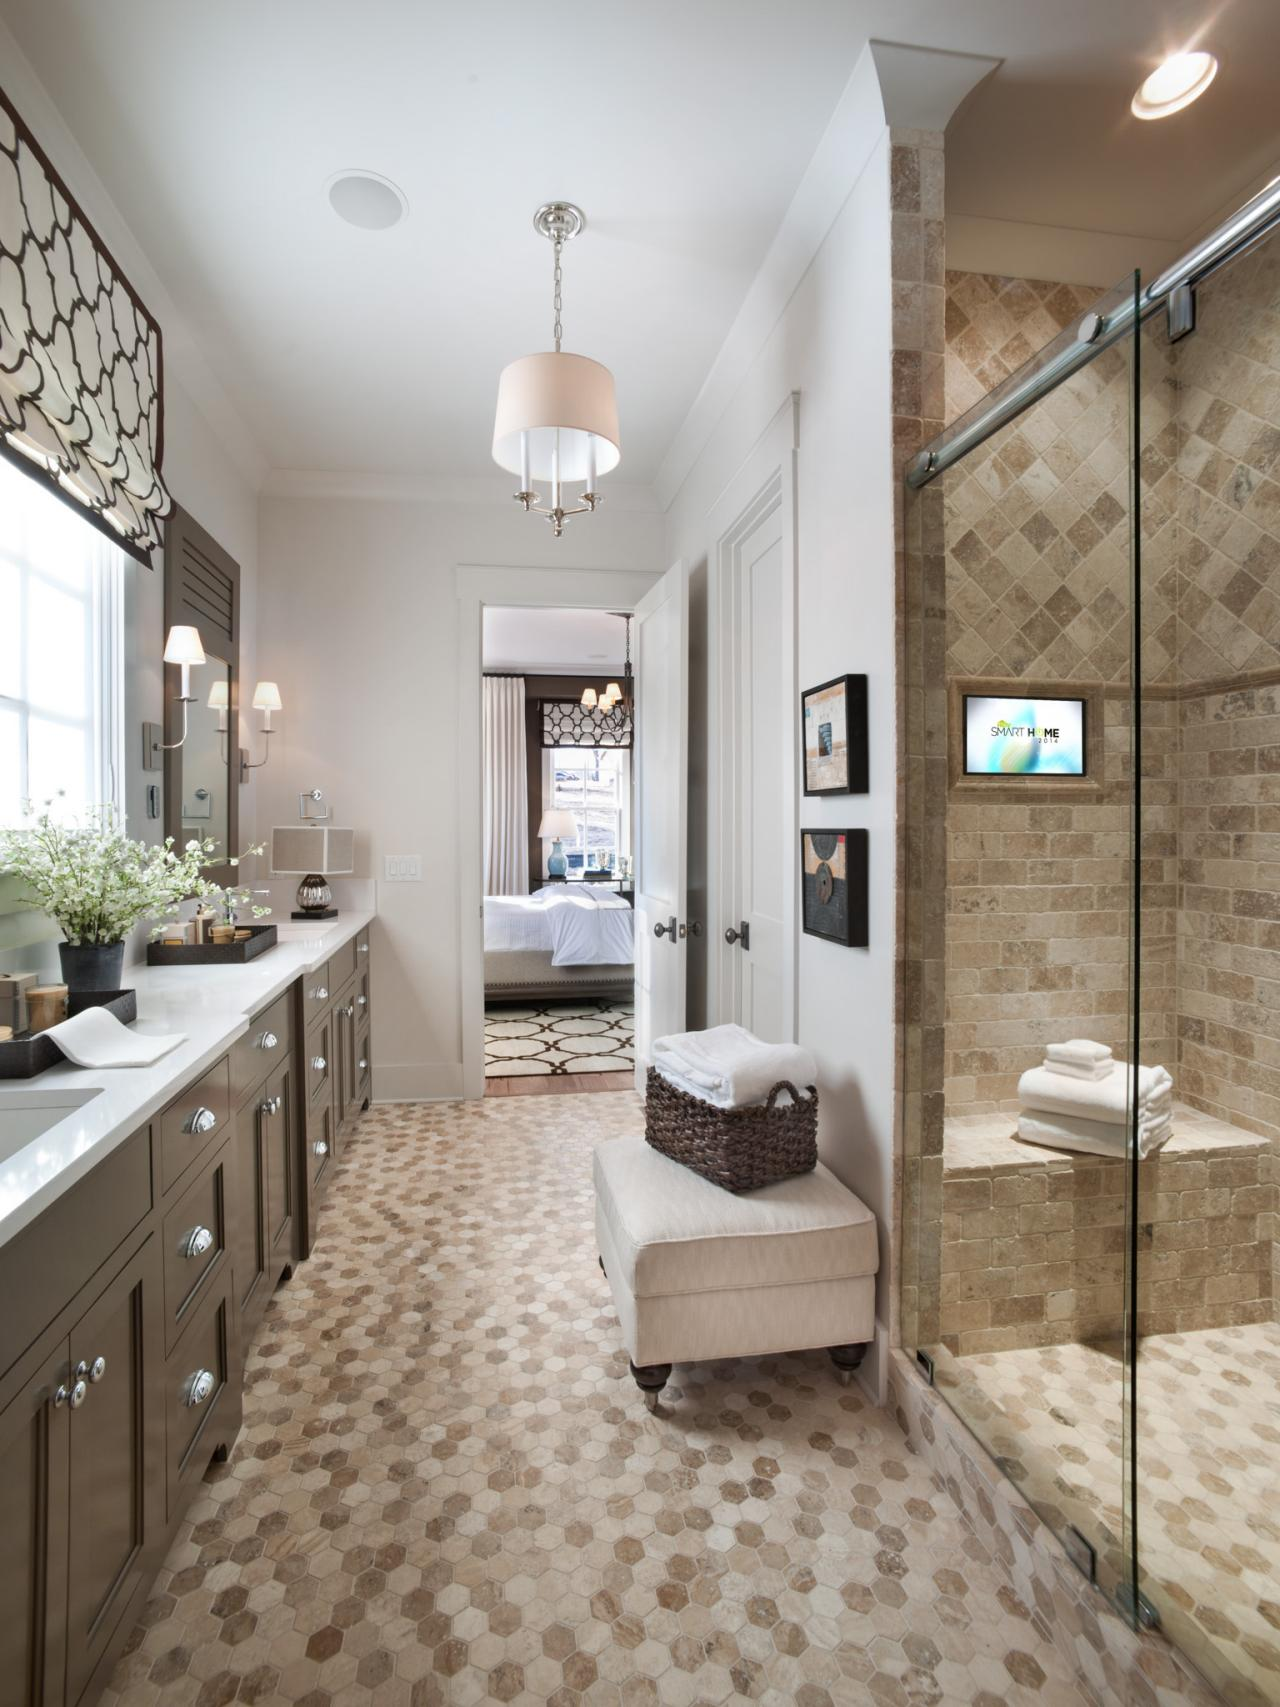 Master bathroom from hgtv smart home 2014 hgtv smart for Bathroom designs hgtv